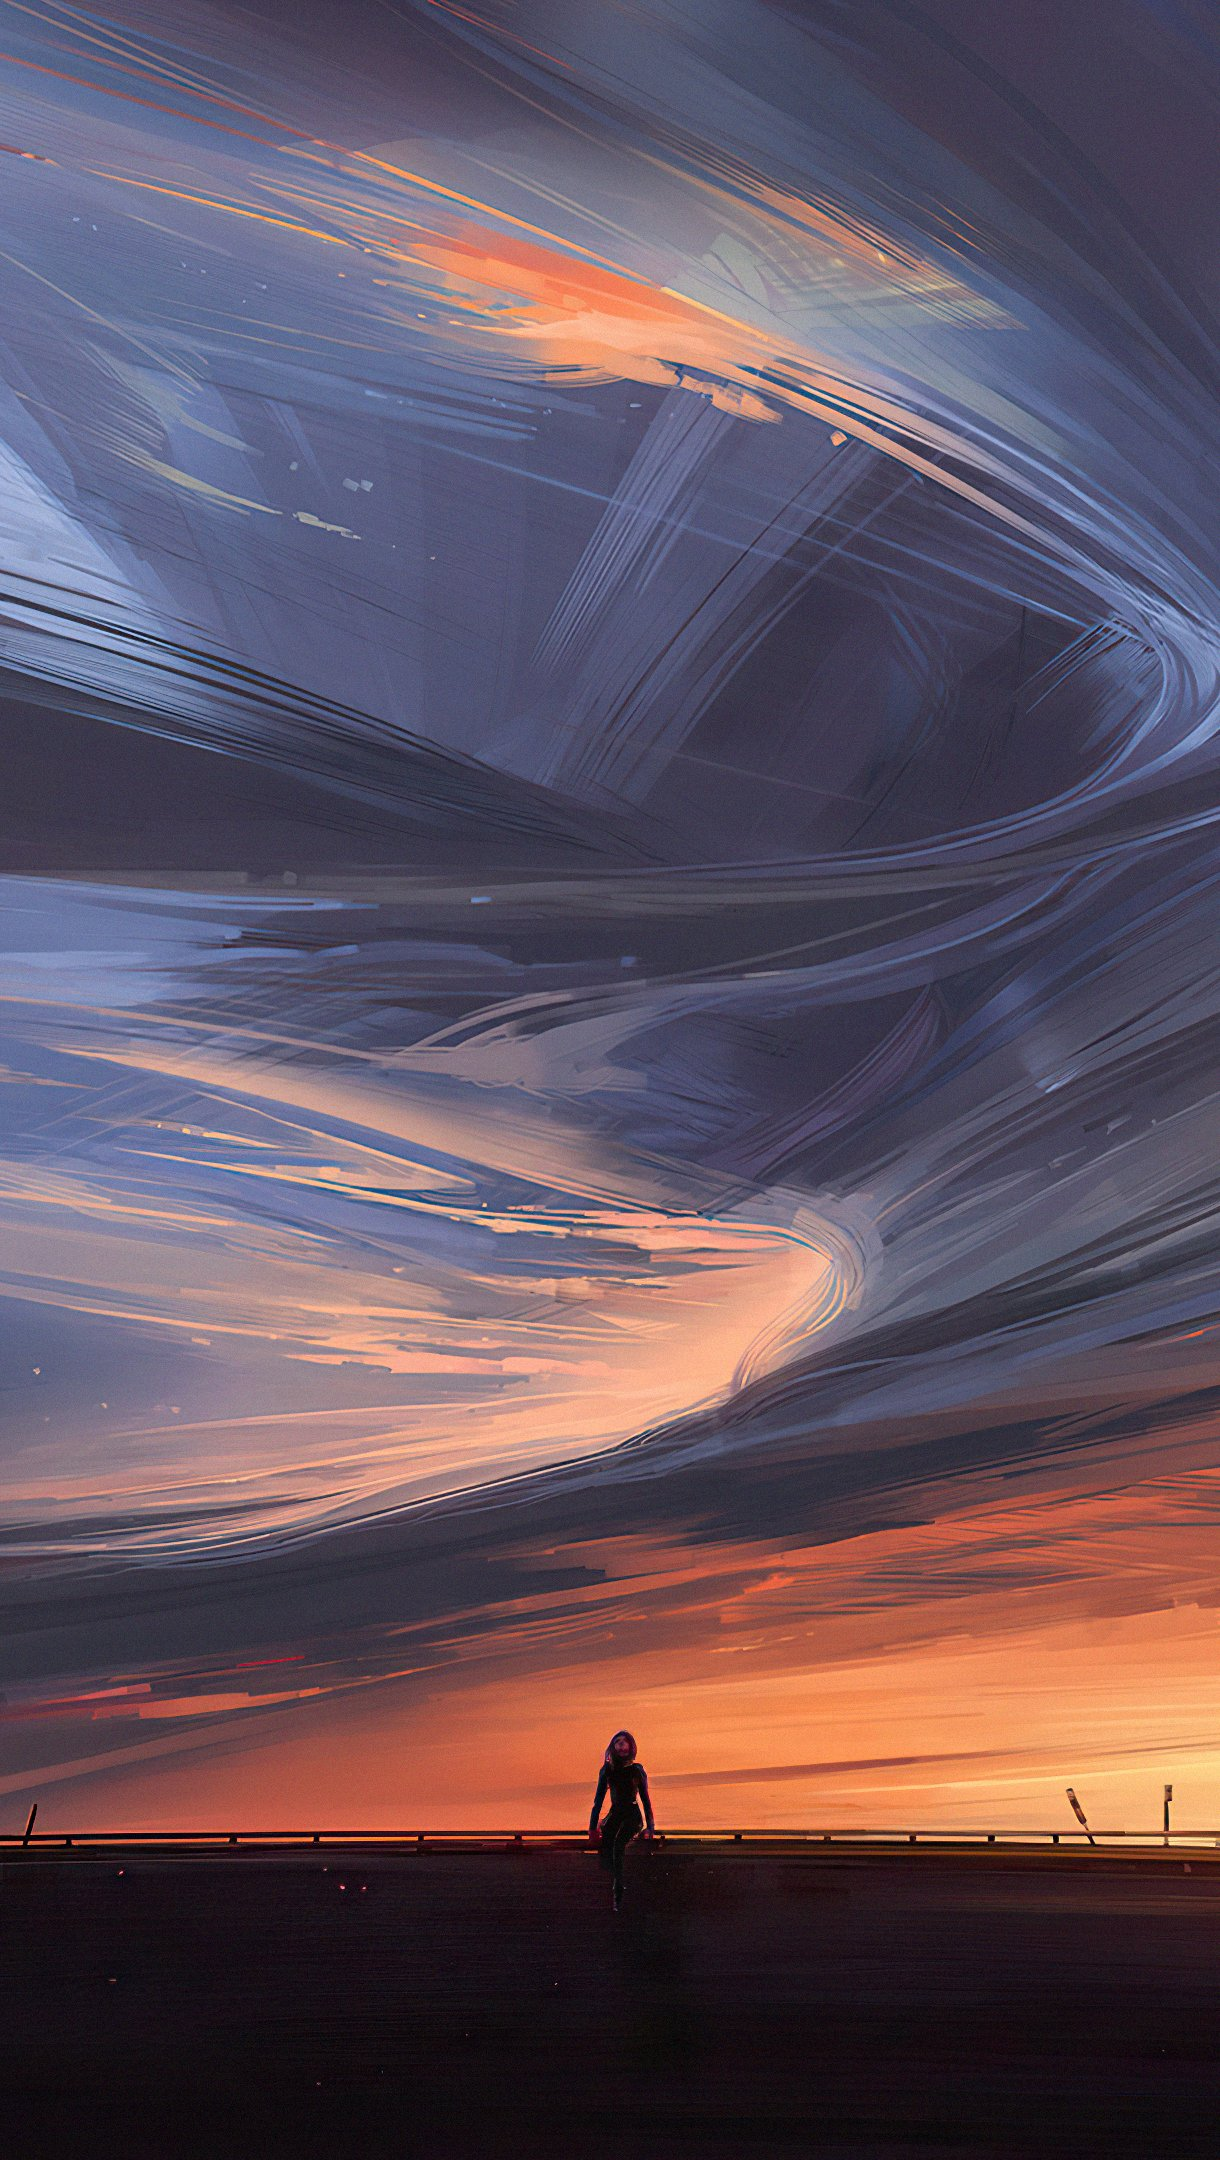 Wallpaper Sunset with clouds in swirl and thunder Vertical